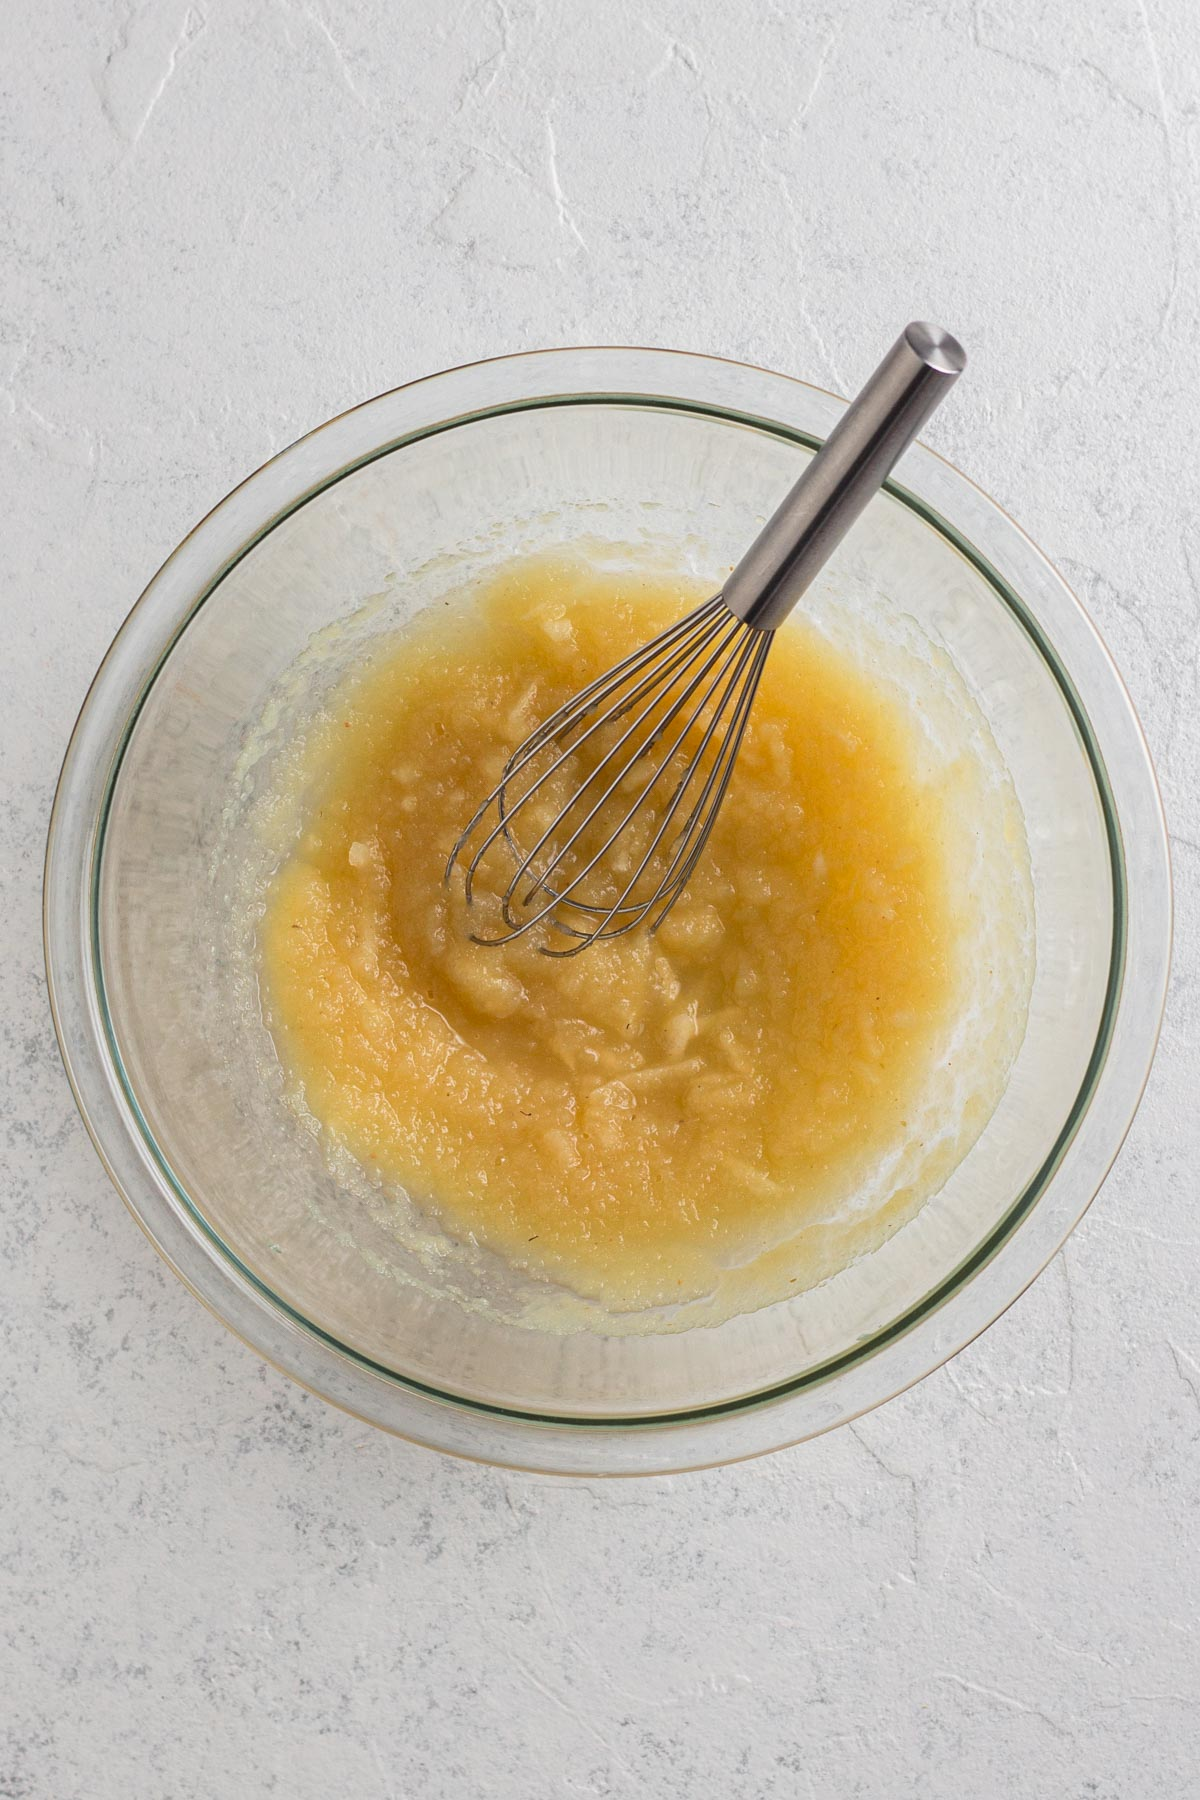 applesauce and grated apple in a glass bowl with a metal whisk